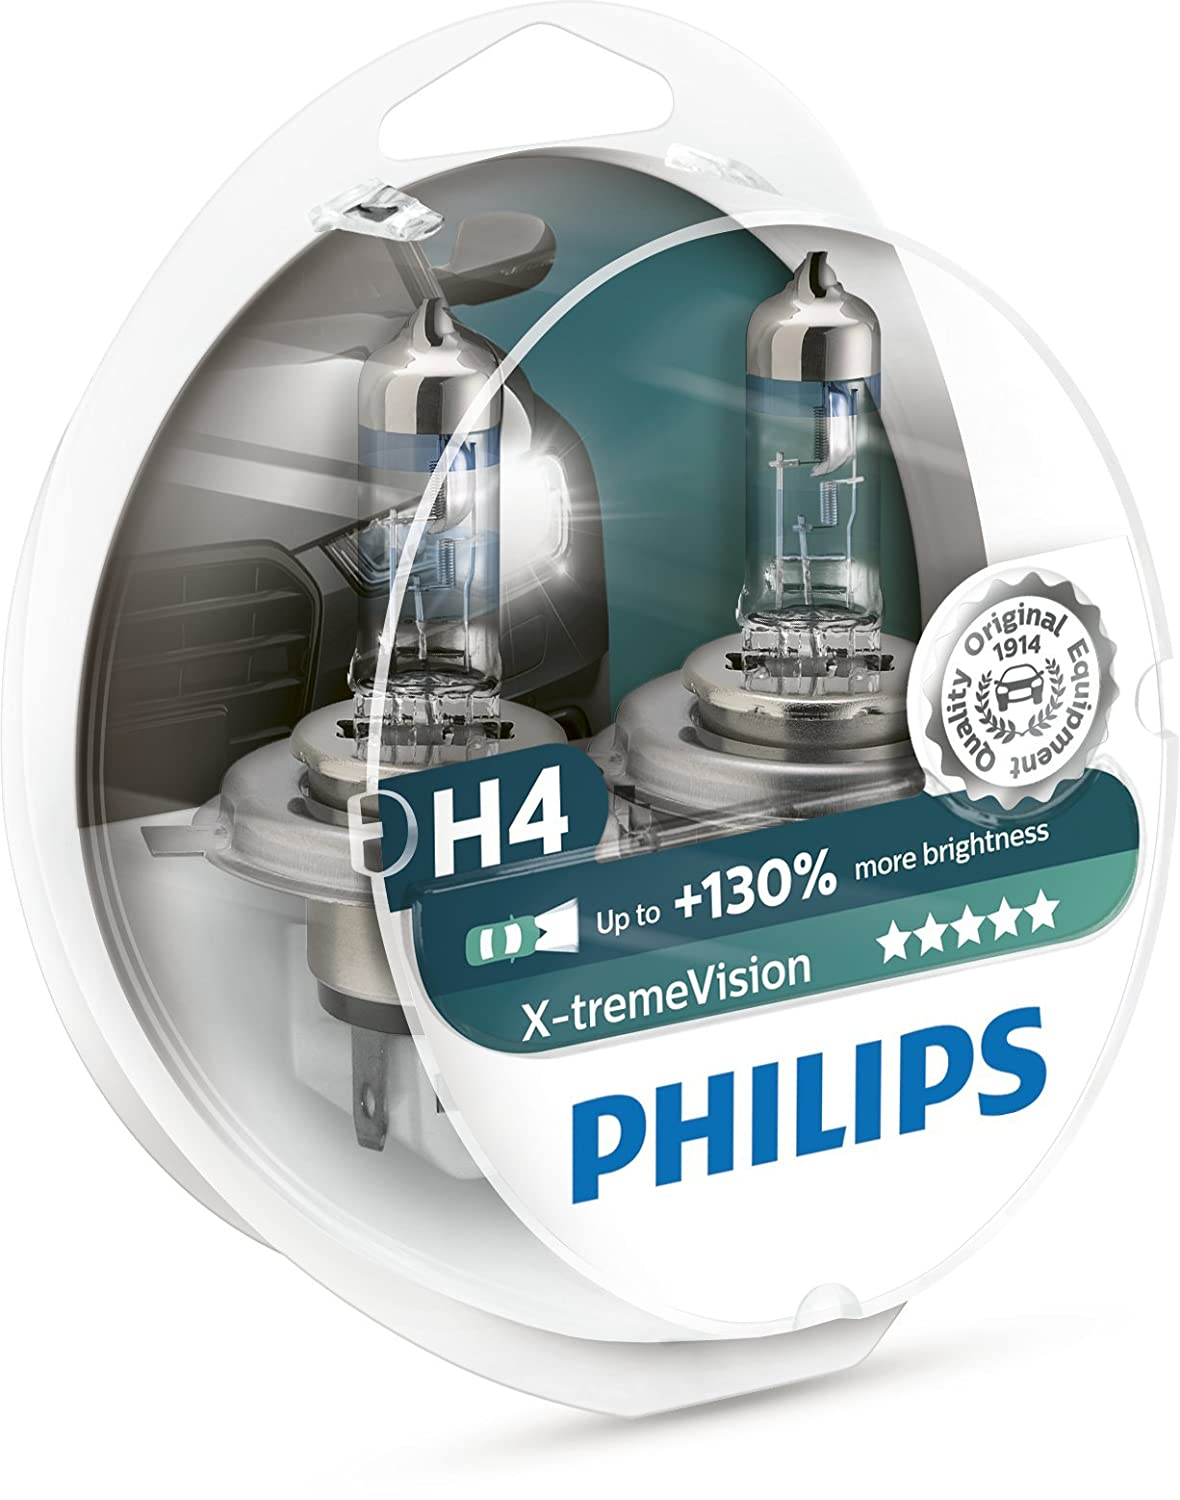 PHILIPS XTREME VISION +130 H4 Ampoules de Phare Avant Origine (2PCS) 12342XV +S2 Philips GmbH BC Automotive 12342XV+S2